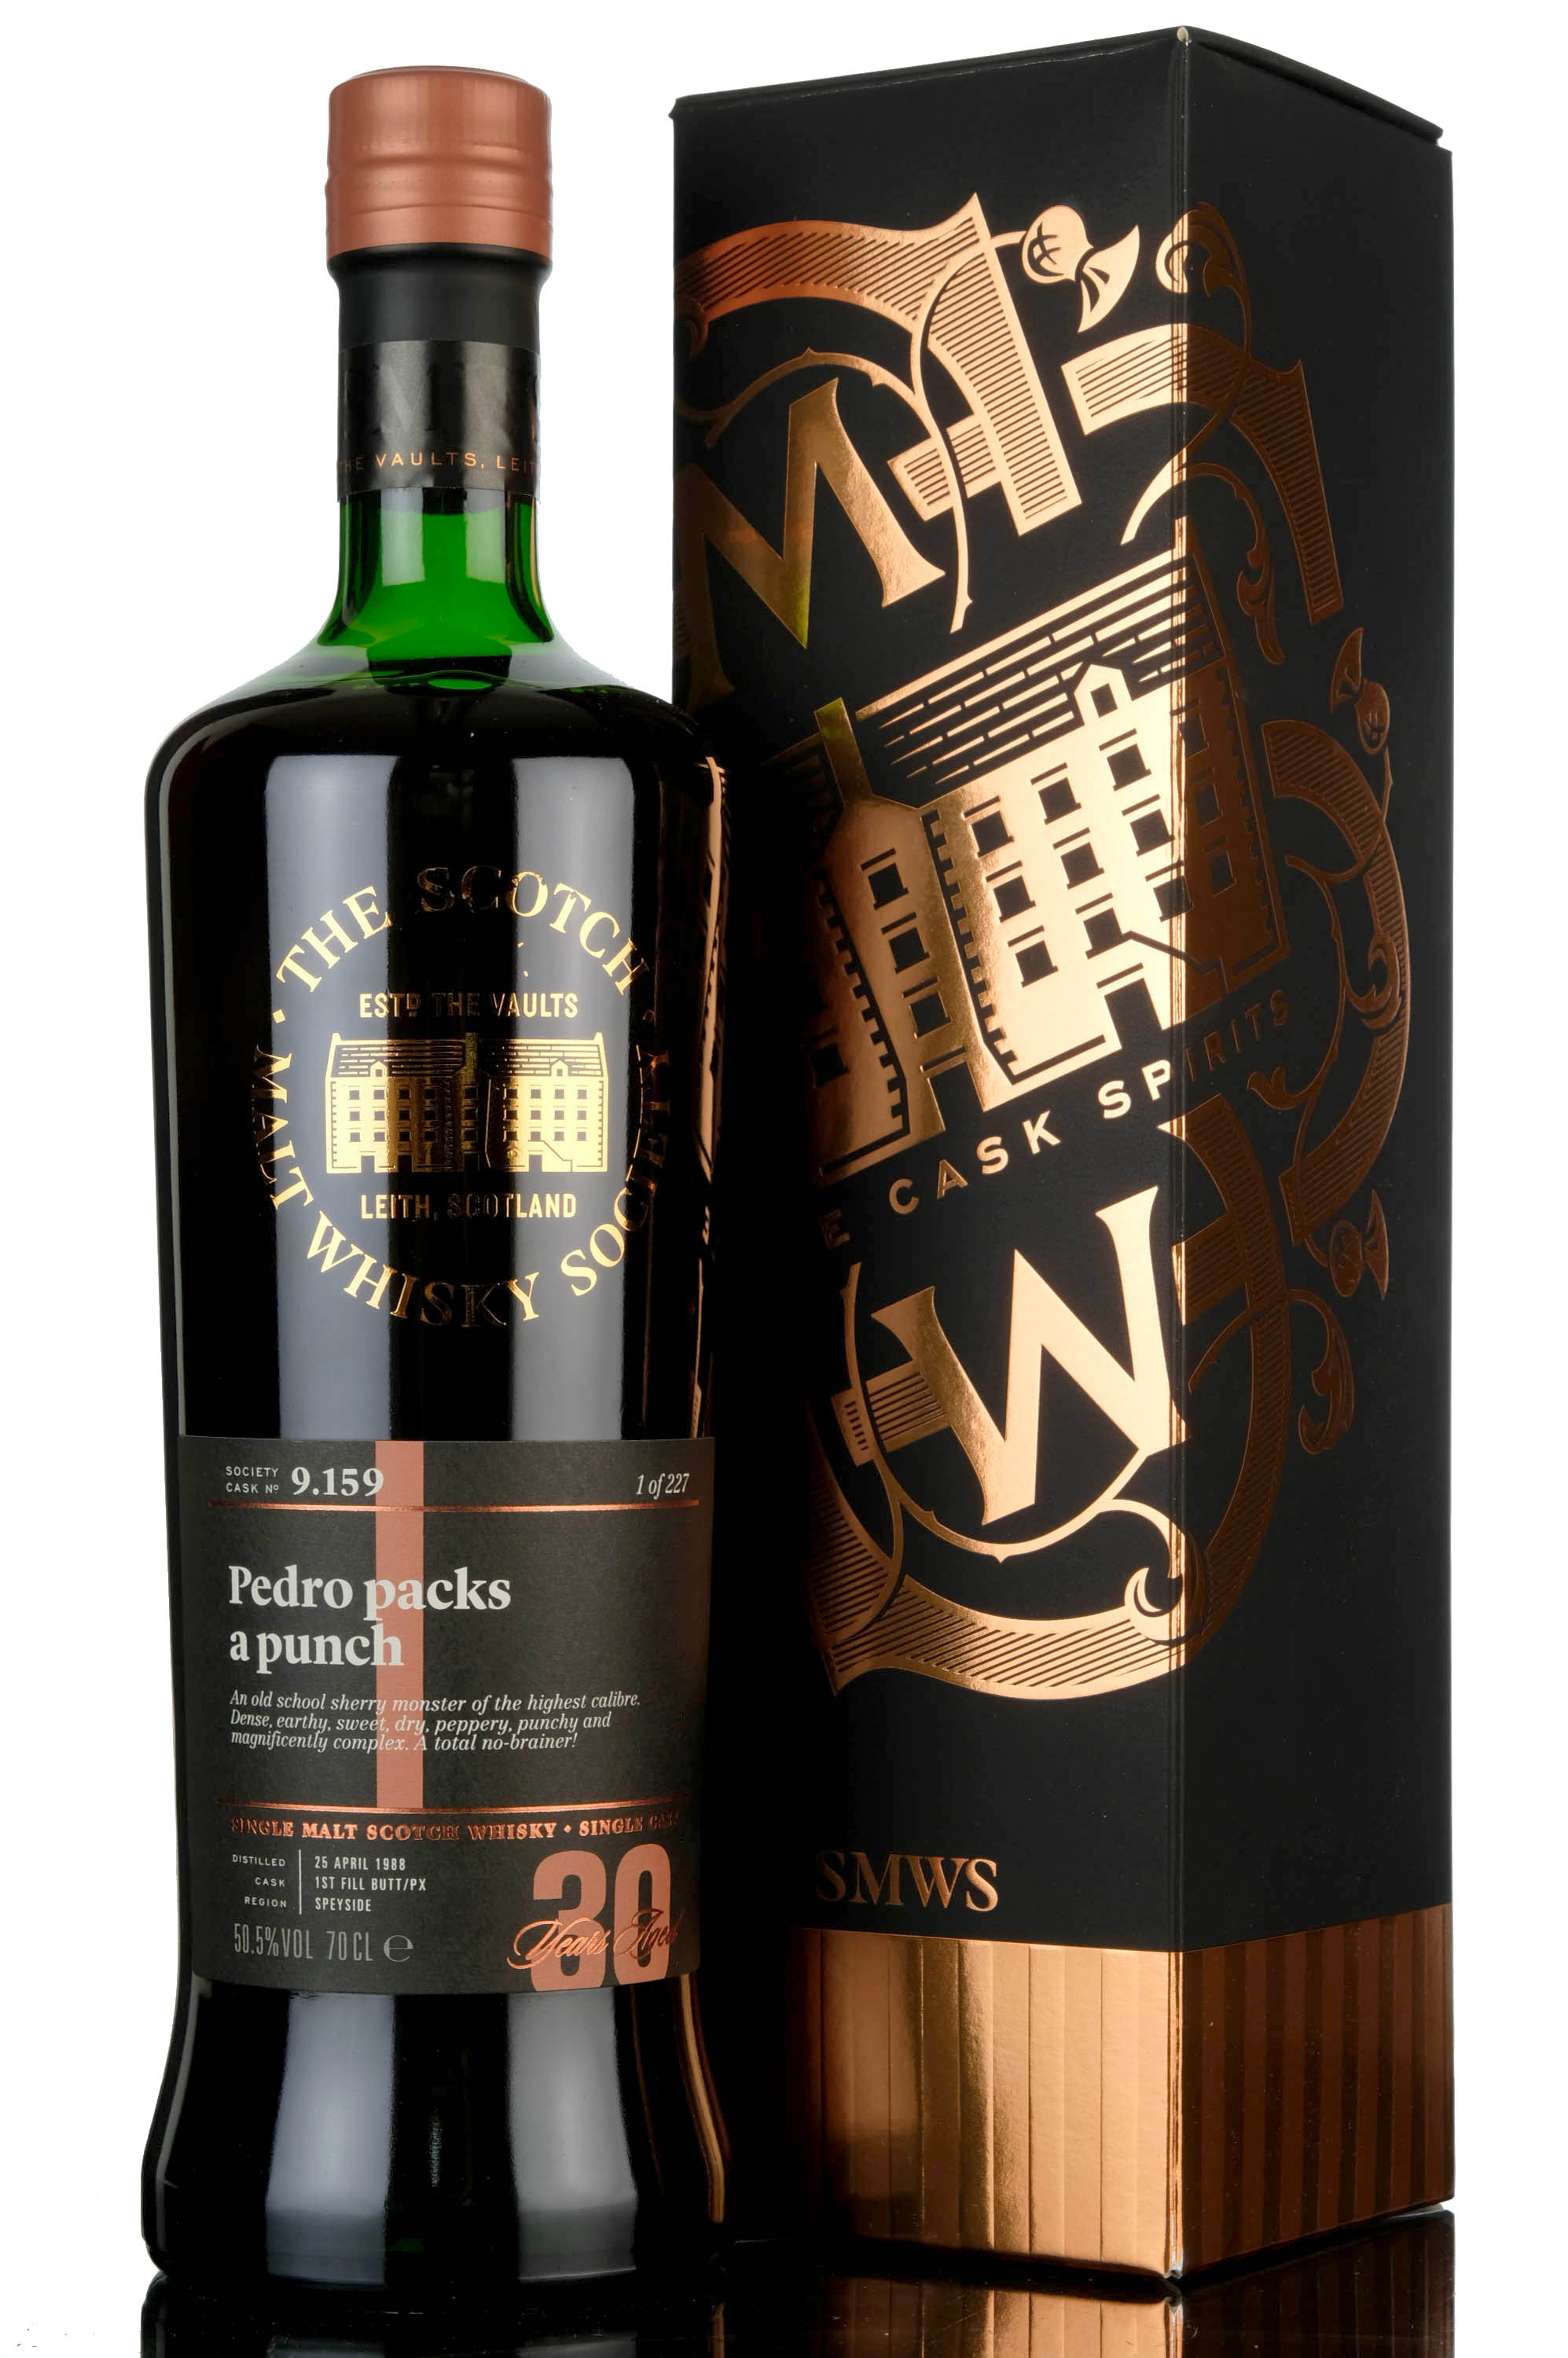 glen grant 1988 - 30 year old - smws 9.159 - pedro packs a punch